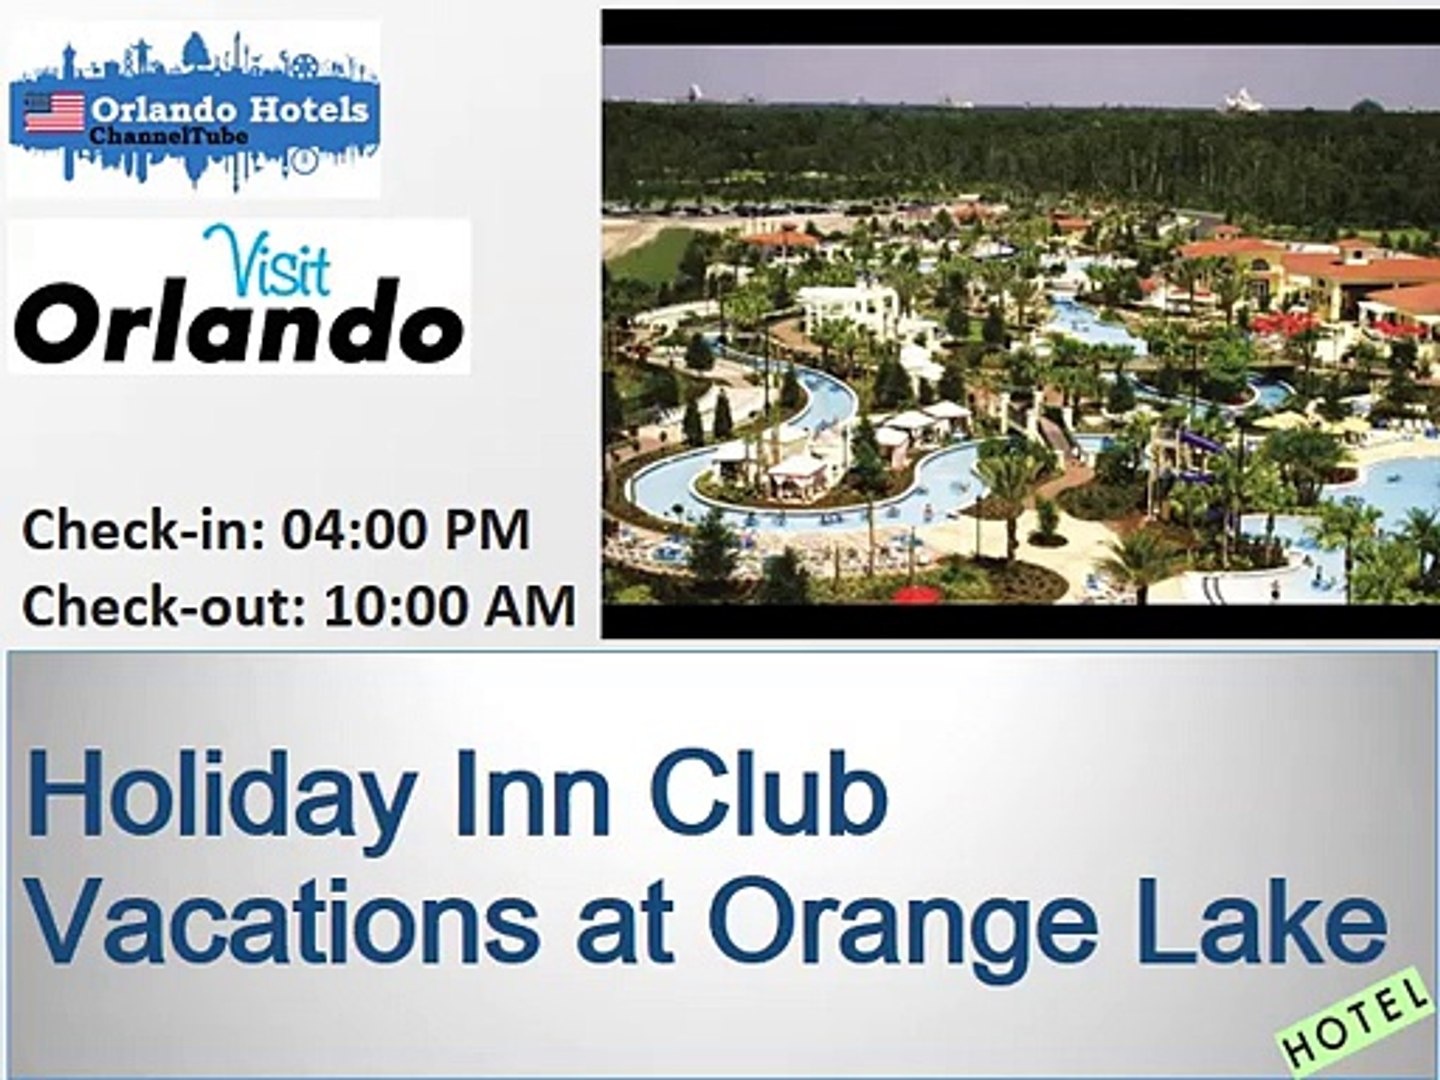 Holiday Inn Club Vacations at Orange Lake | Beautiful Orlando Hotels ideas  and pic info